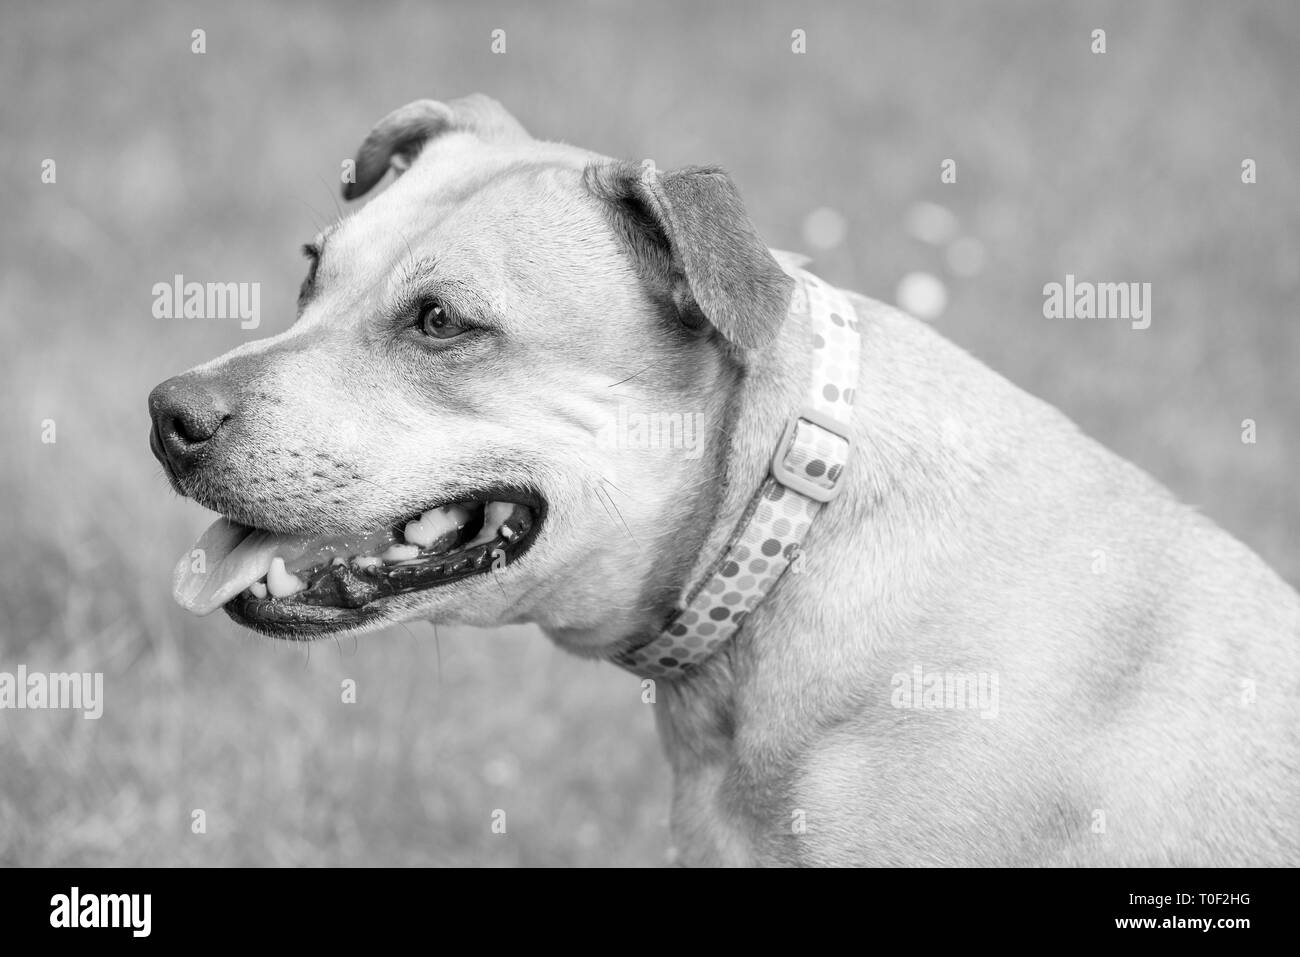 A side profile of a staffie looking thoughtful in the garden - Stock Image